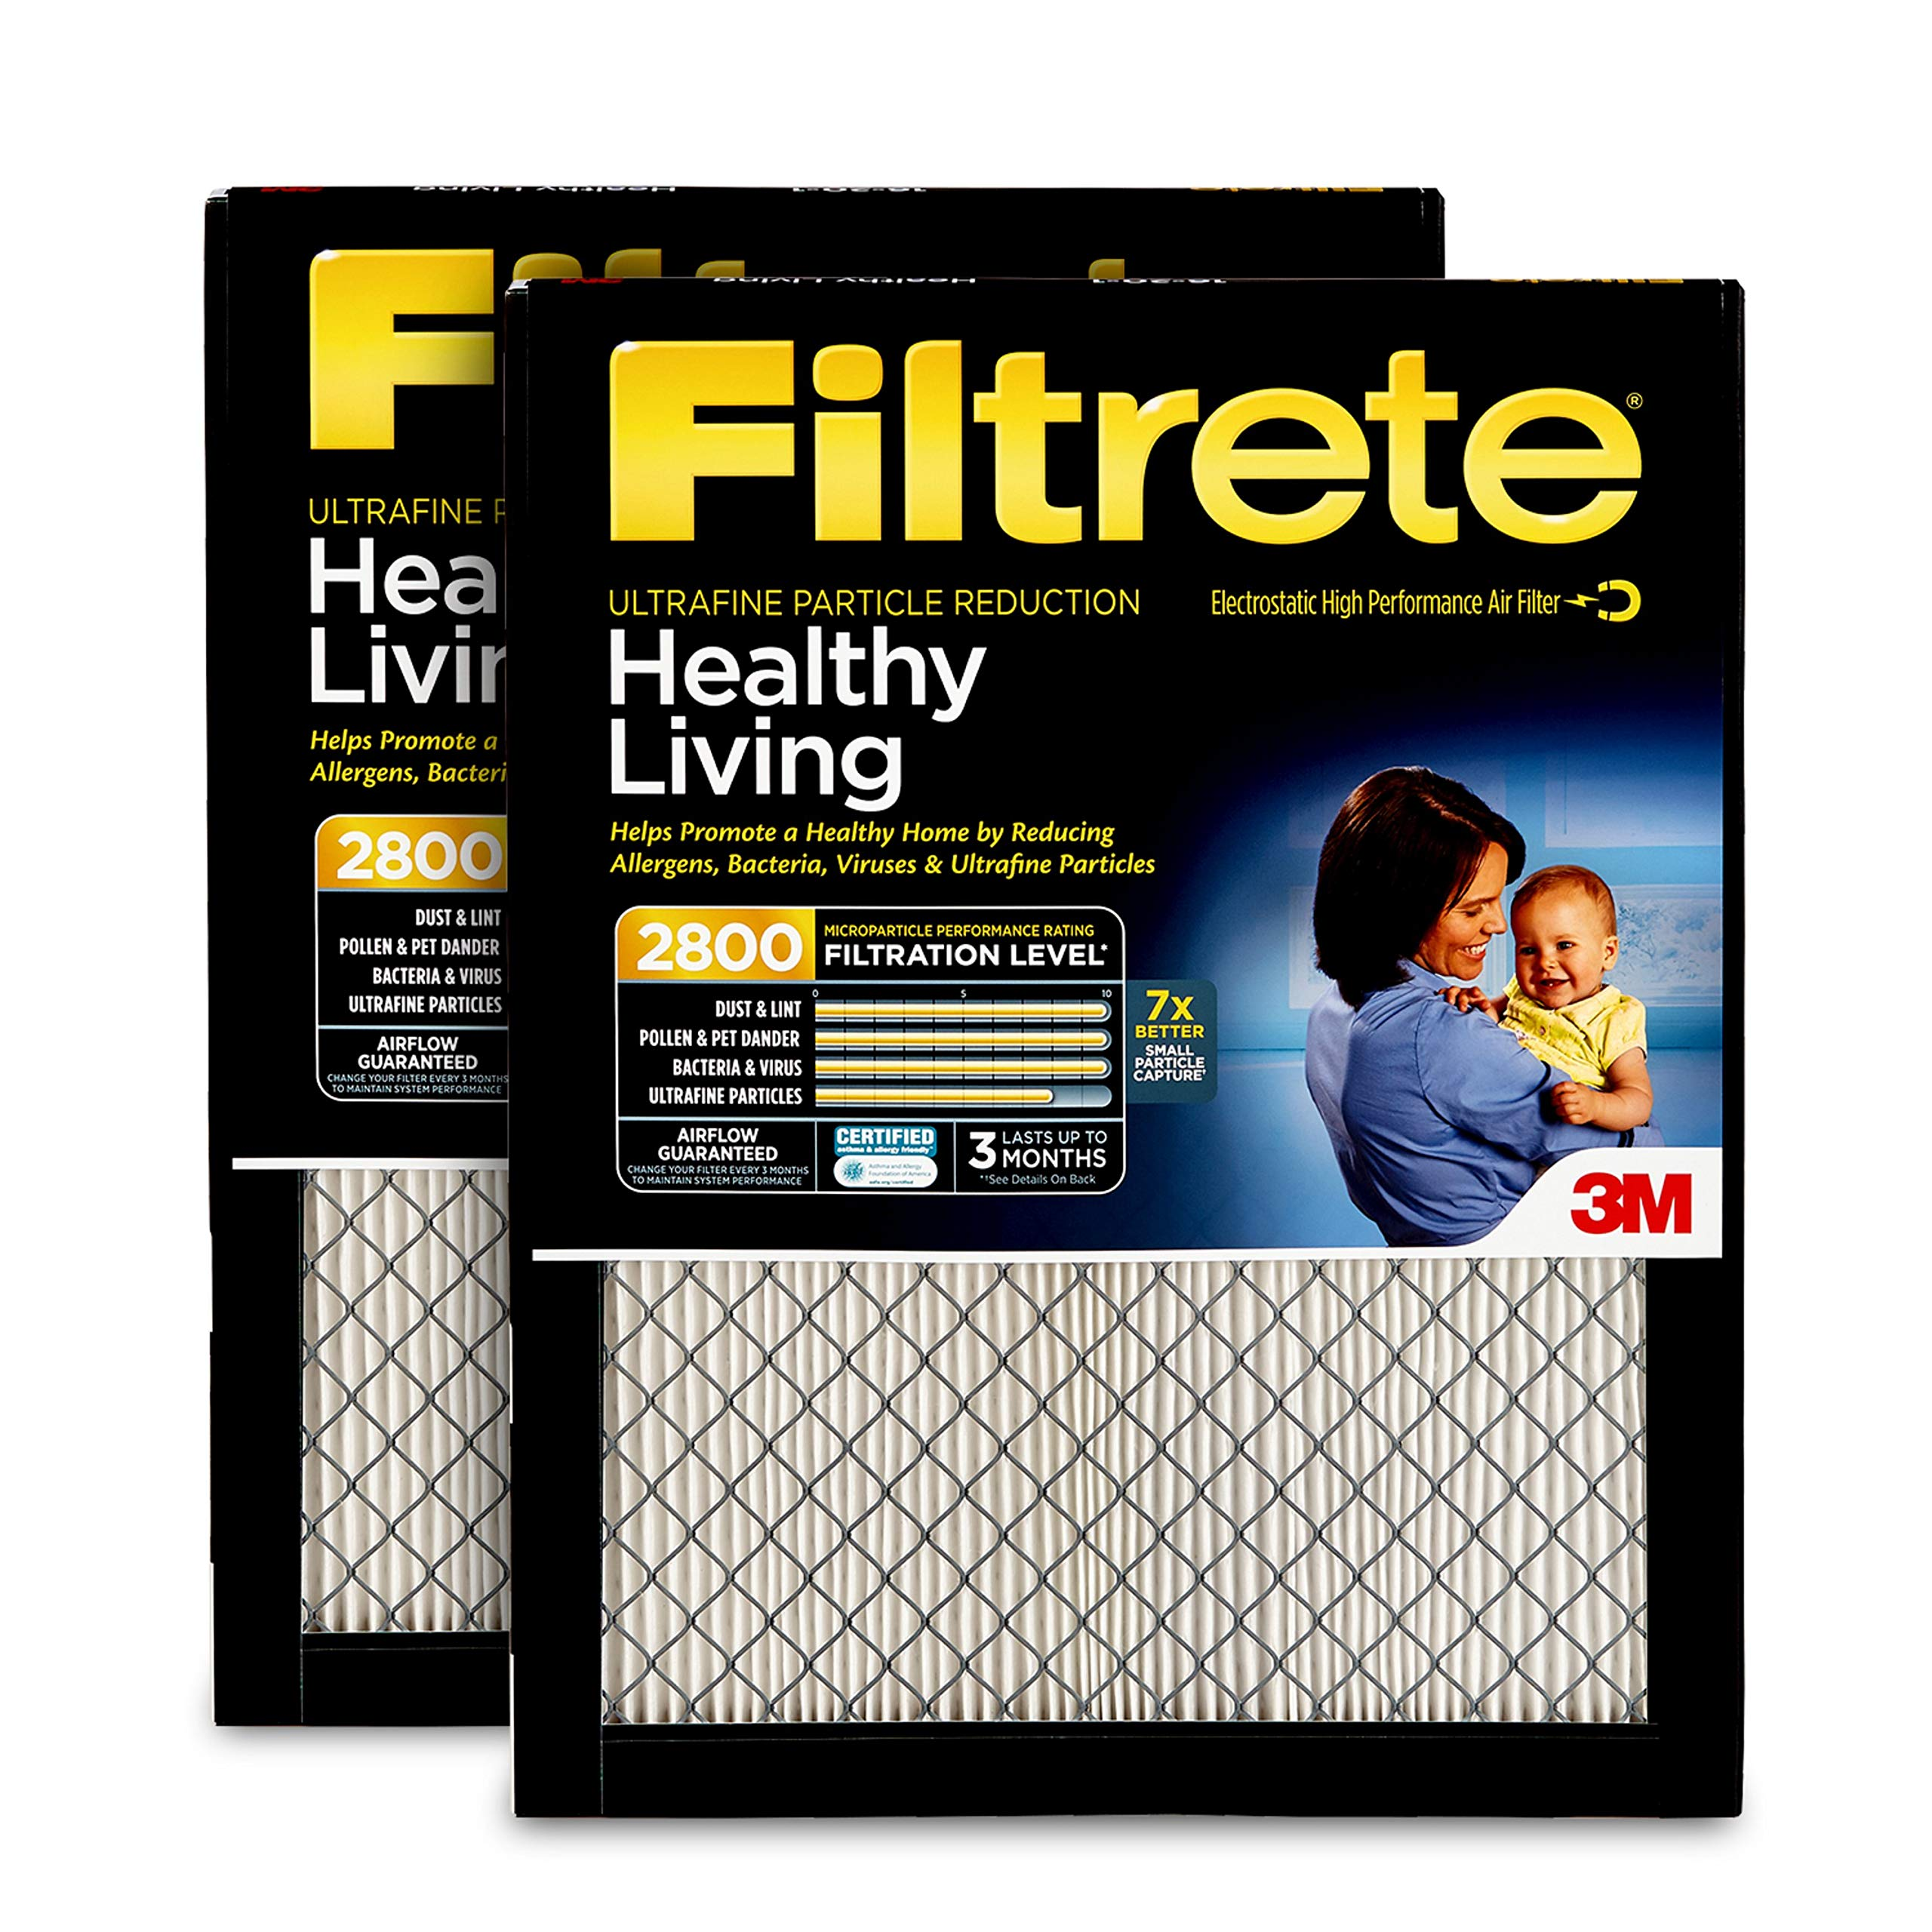 Filtrete 20x25x1, AC Furnace Air Filter, MPR 2800, Healthy Living Ultrafine Particle Reduction, 2-Pack by Filtrete